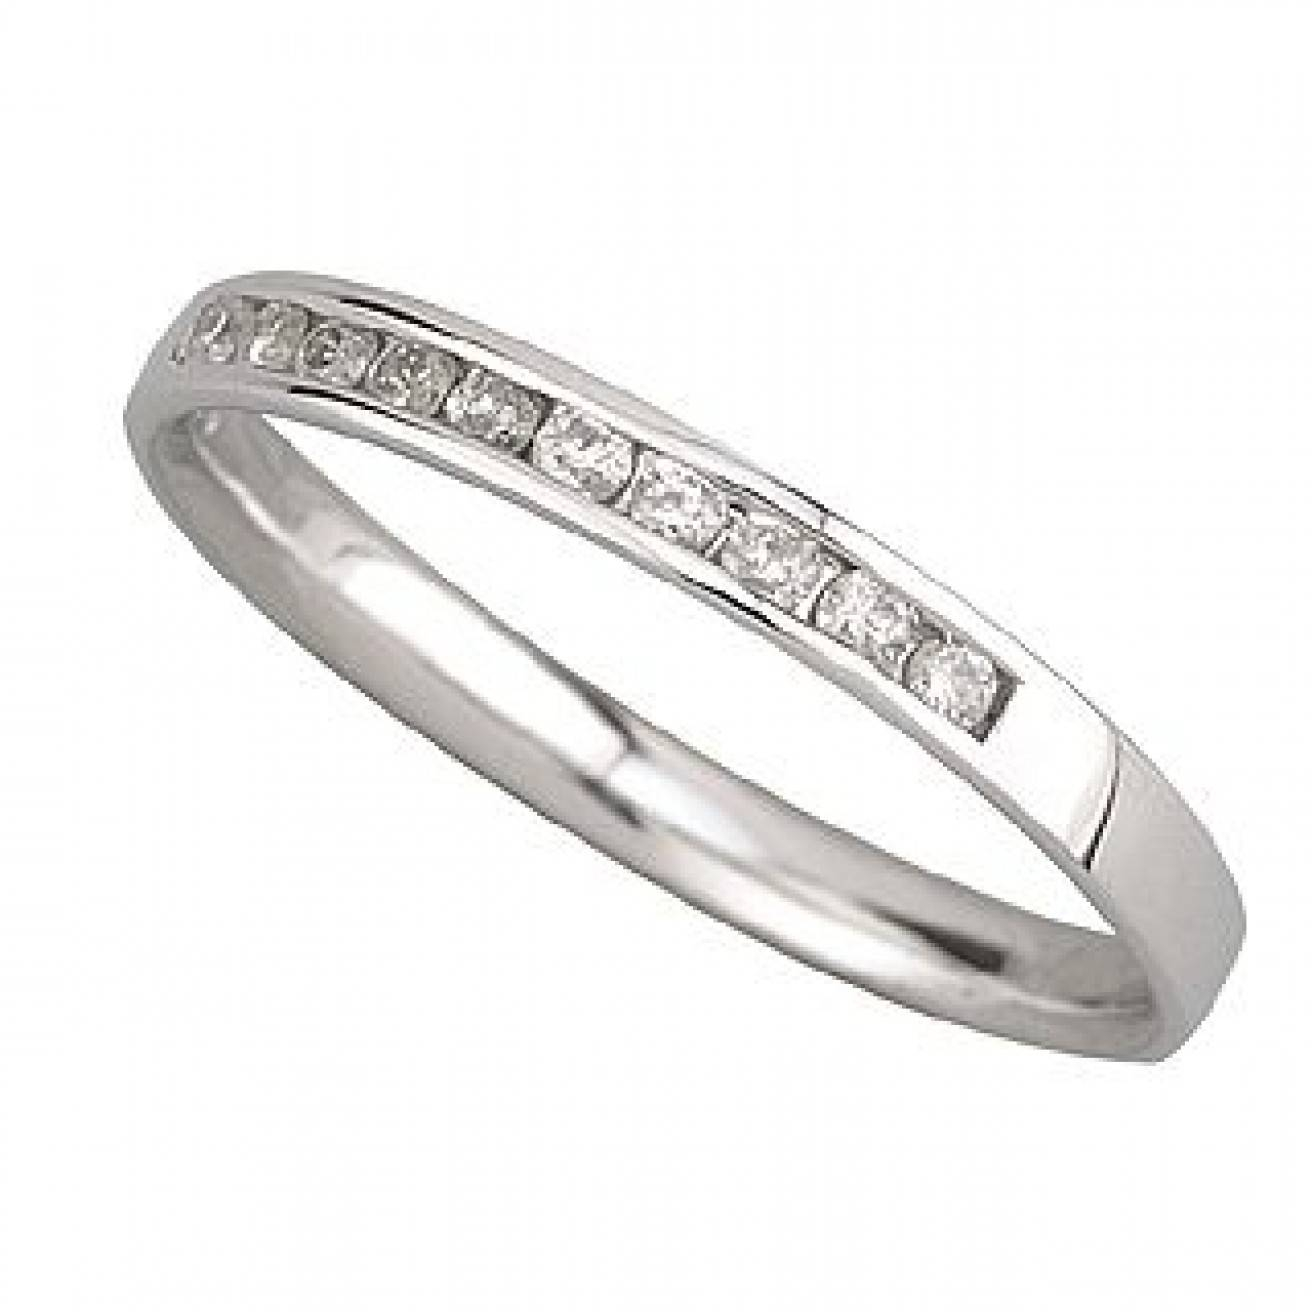 Buy White Gold Wedding Rings Online – Fraser Hart Within White Gold Wedding Rings For Women (View 15 of 15)